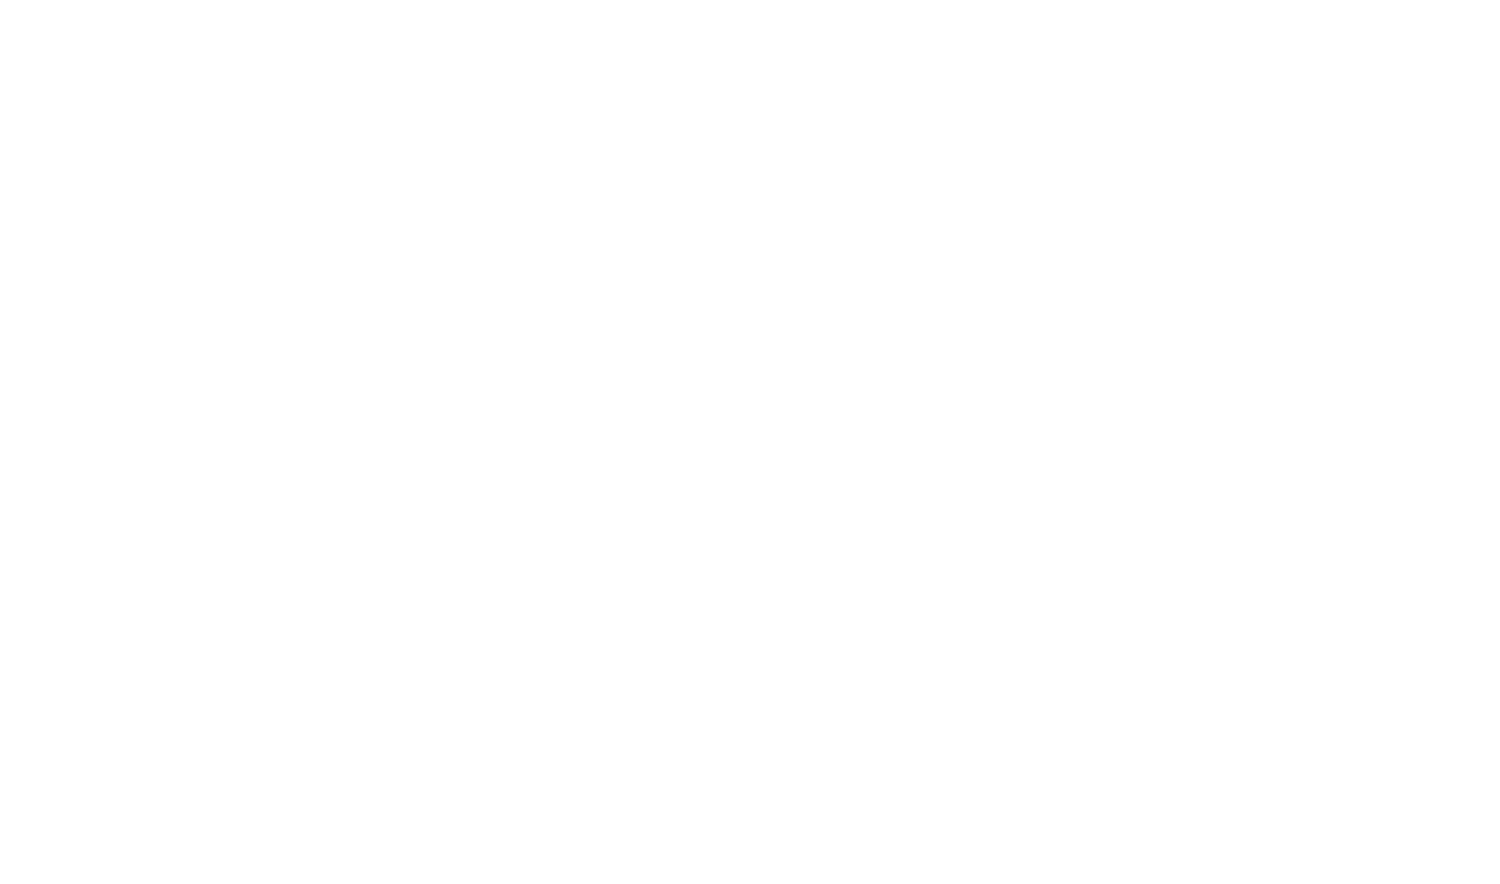 Association of Information Systems